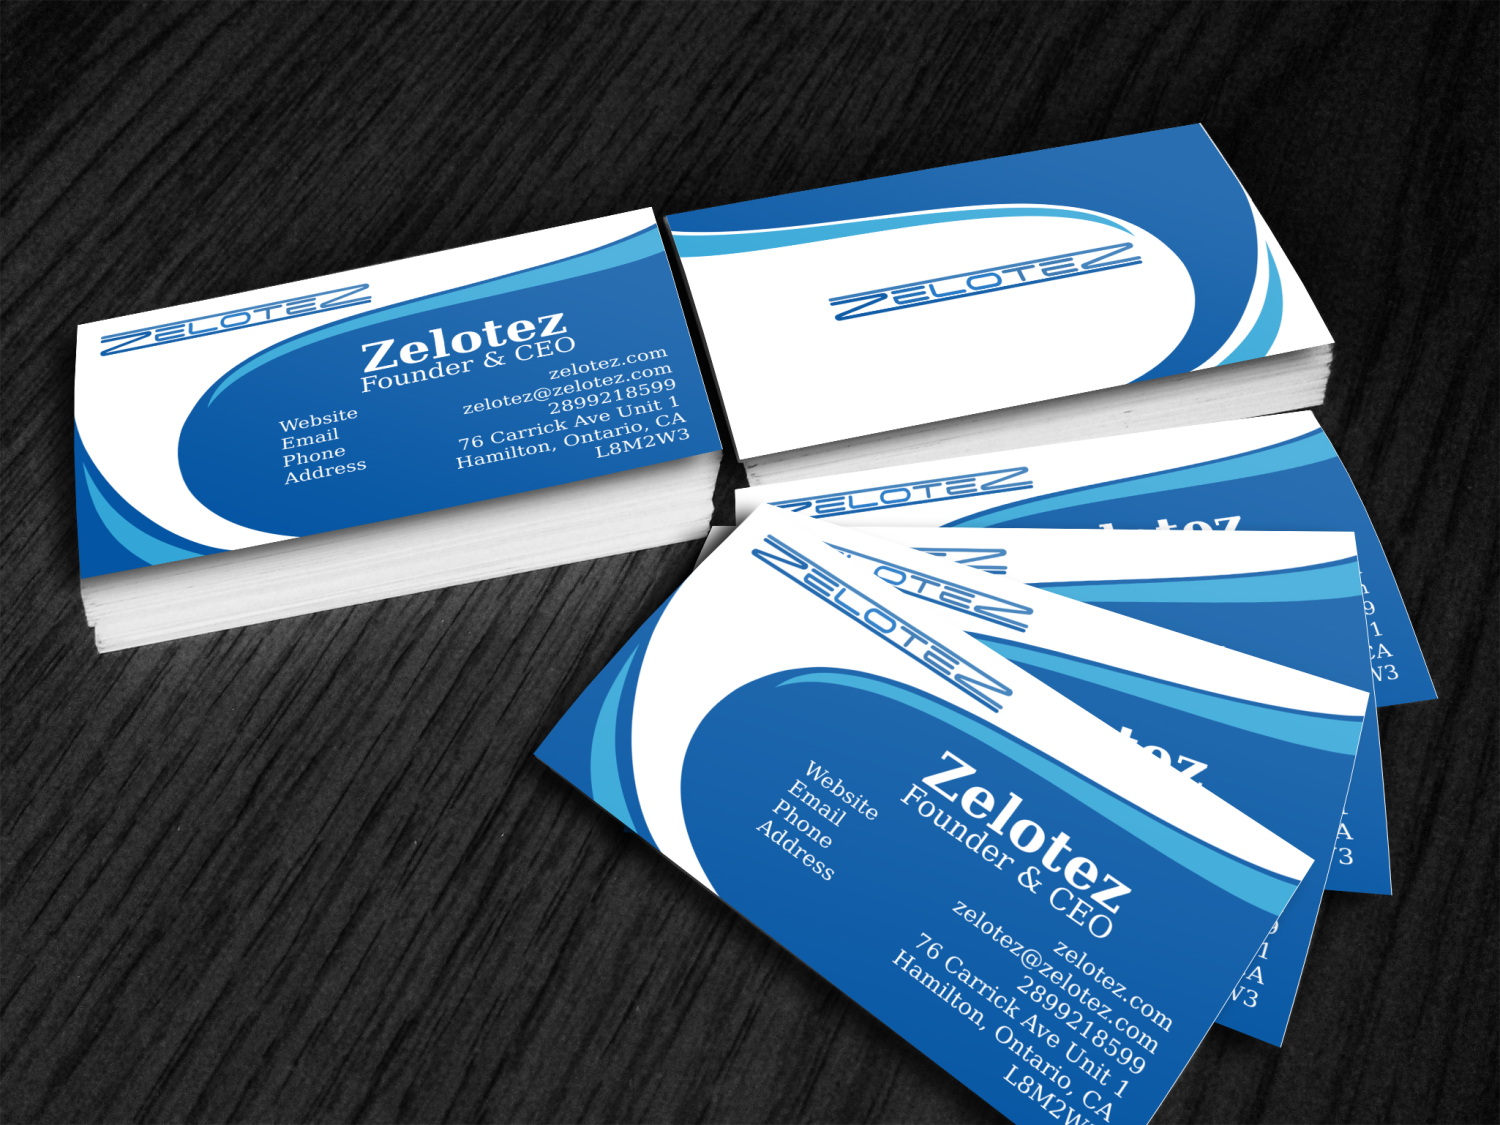 Economical elegant environment business card design for a company business card design by bergo for this project design 11579575 colourmoves Choice Image